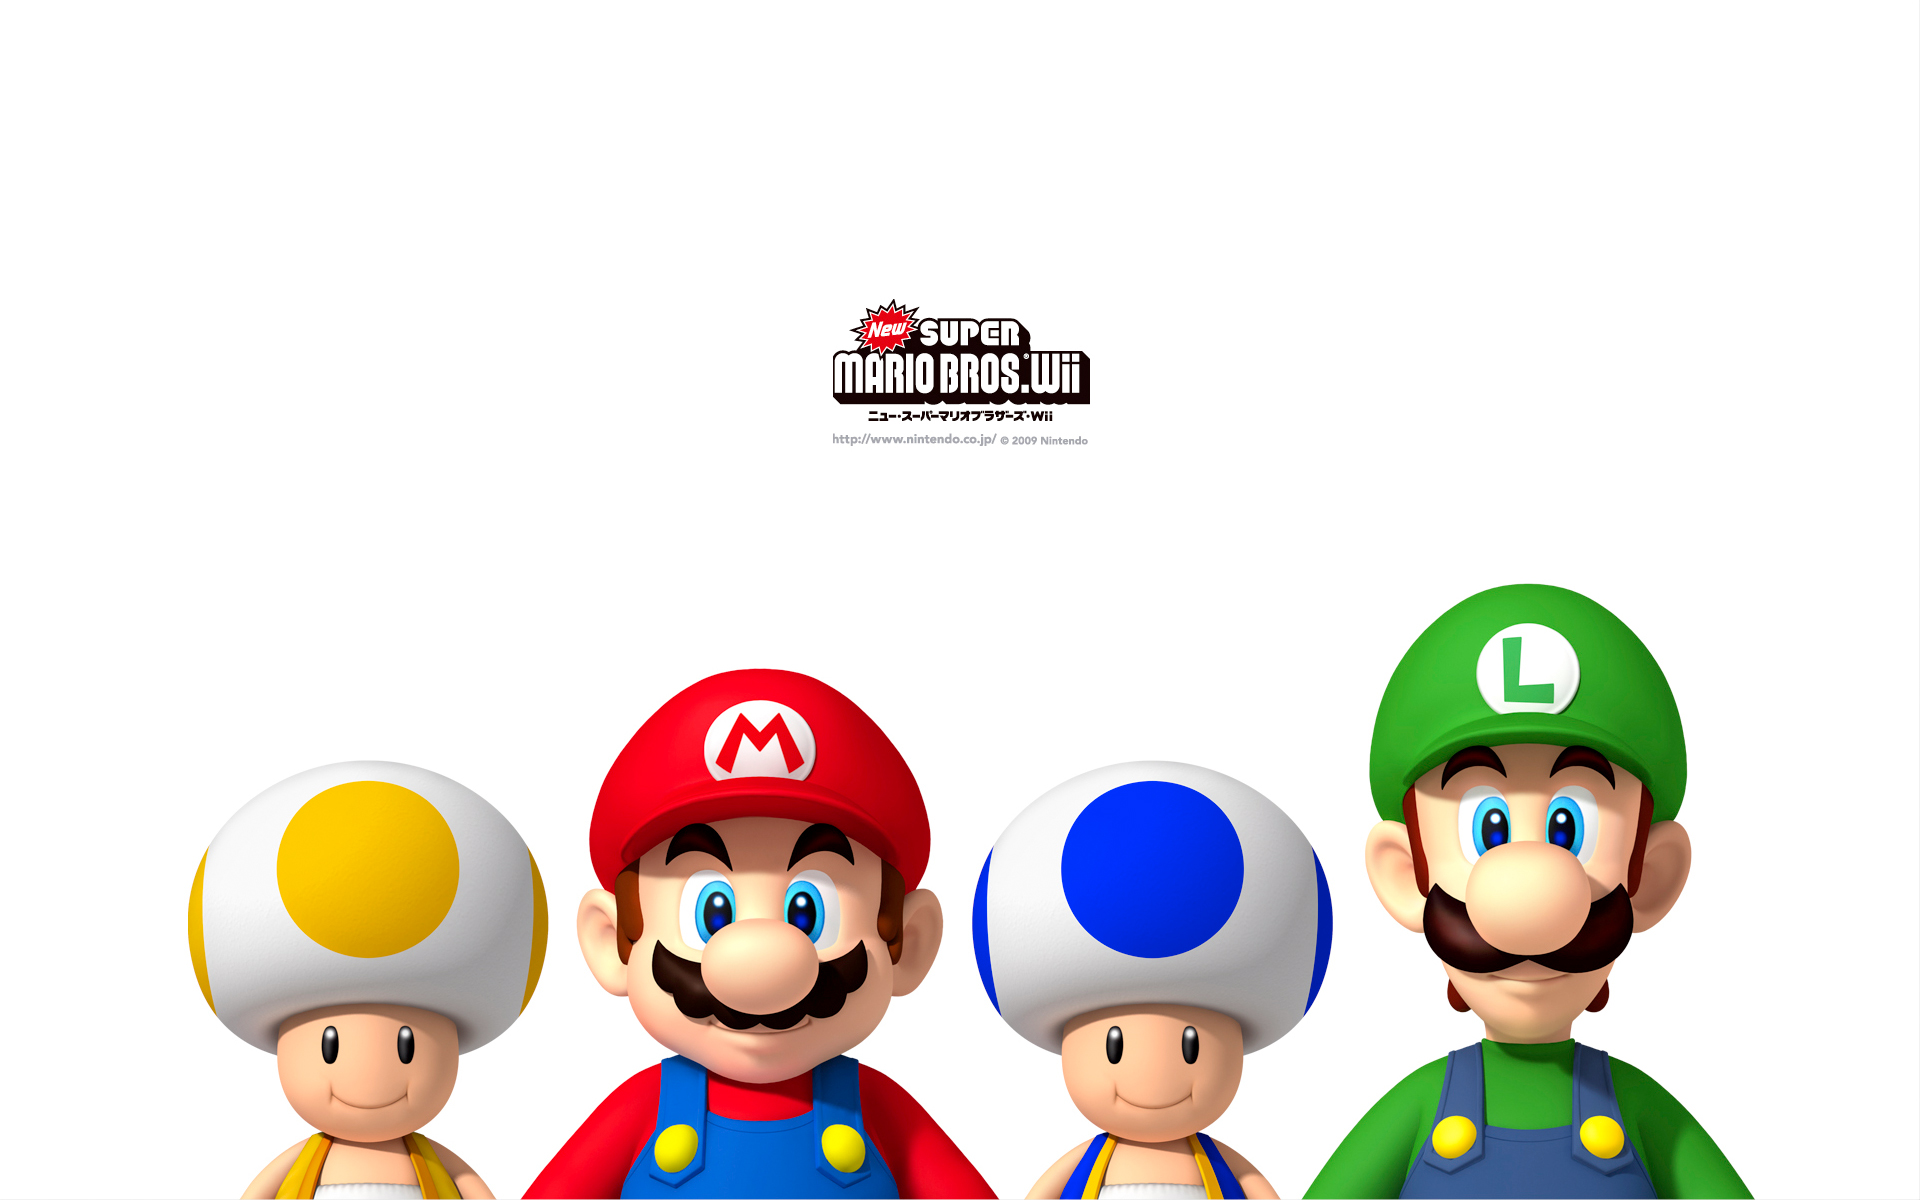 Wallpaper Mario Bros